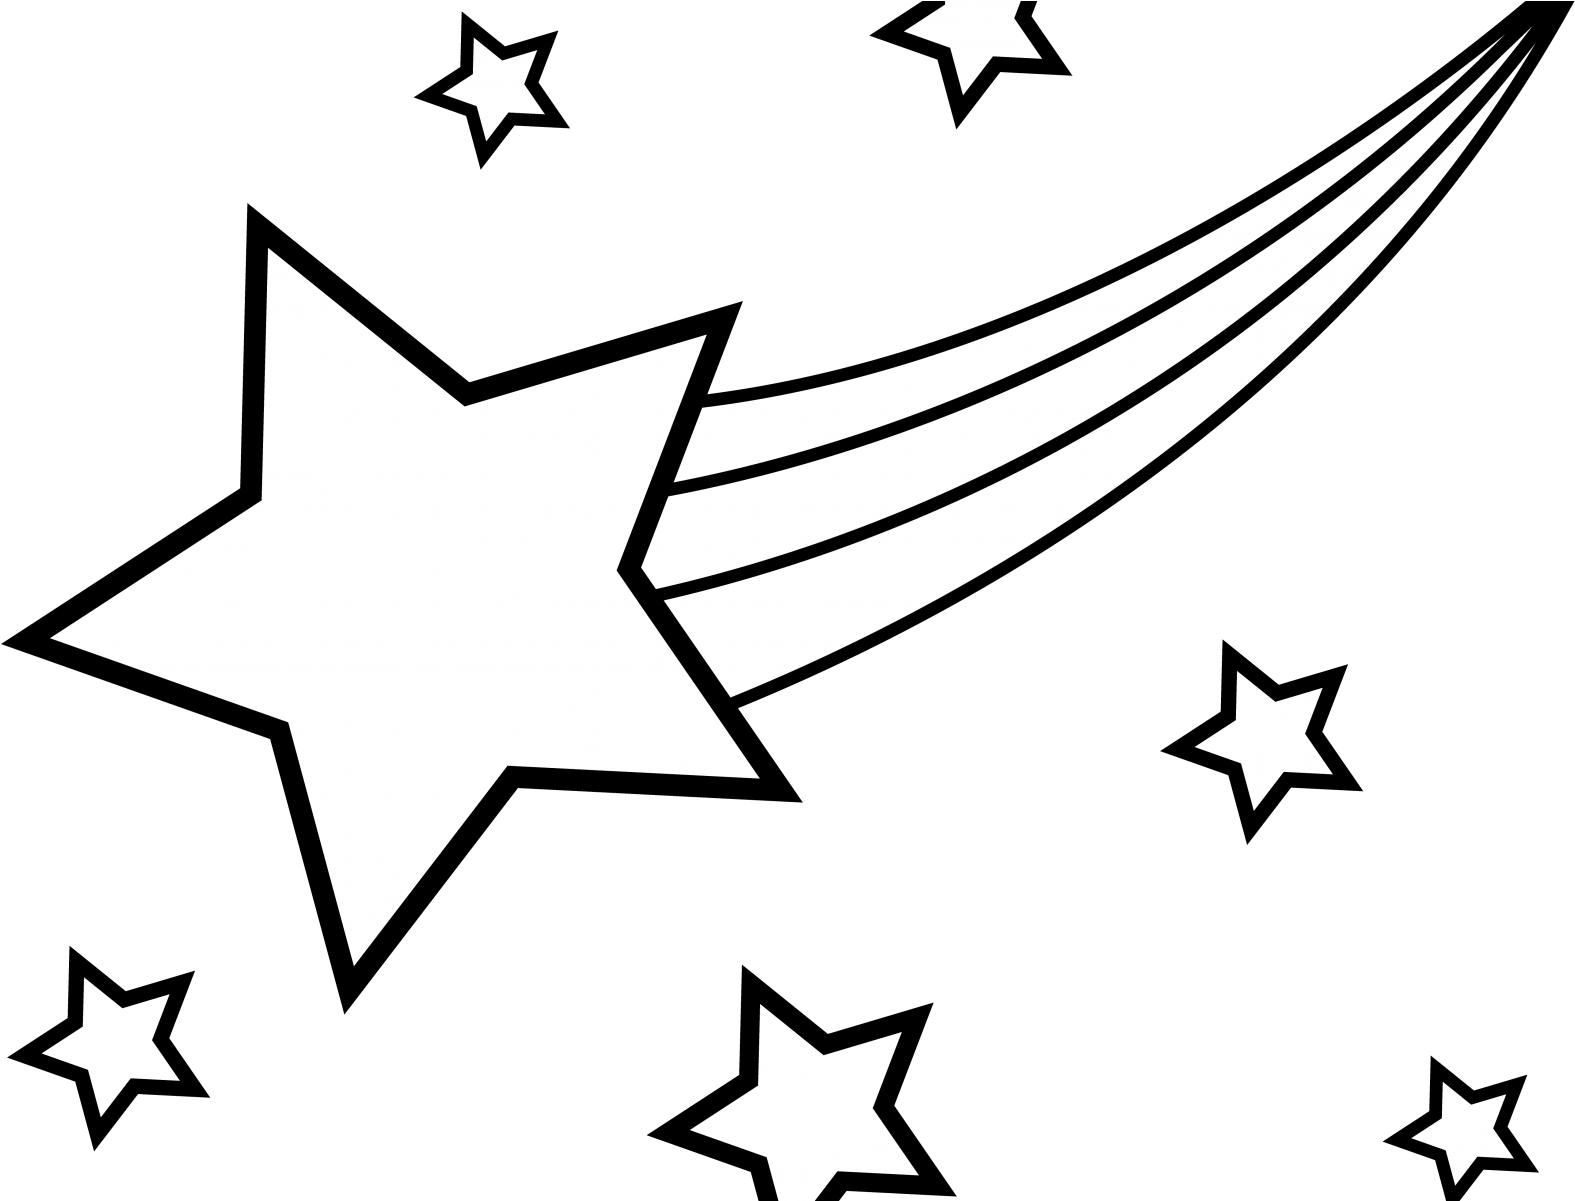 Transparent stars clipart black and white - Falling Stars Clipart Black And White - Black And White Drawn Shooting Star